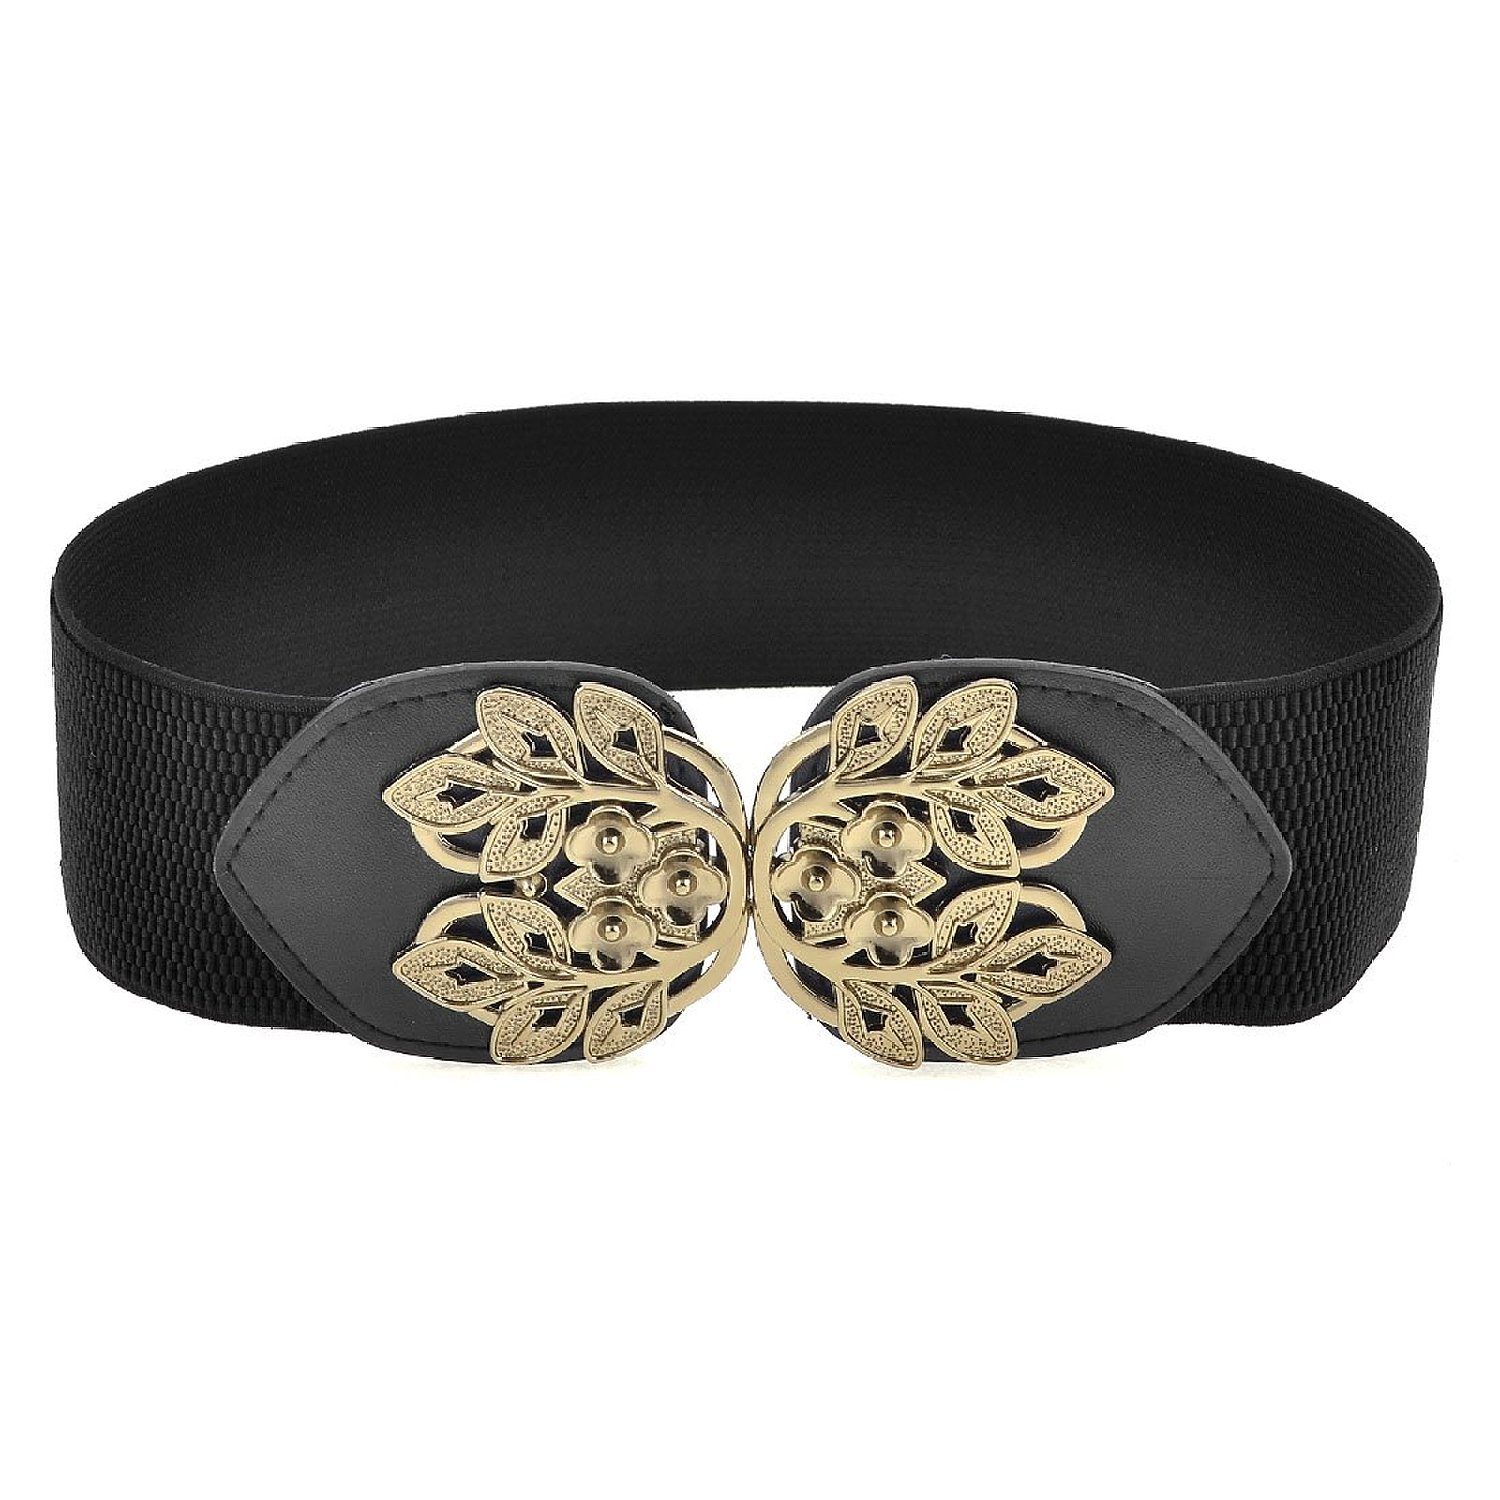 shopping time!Elastic Fabric Band Plum Blossom Design Cinch Belt for Ladies(China (Mainland))